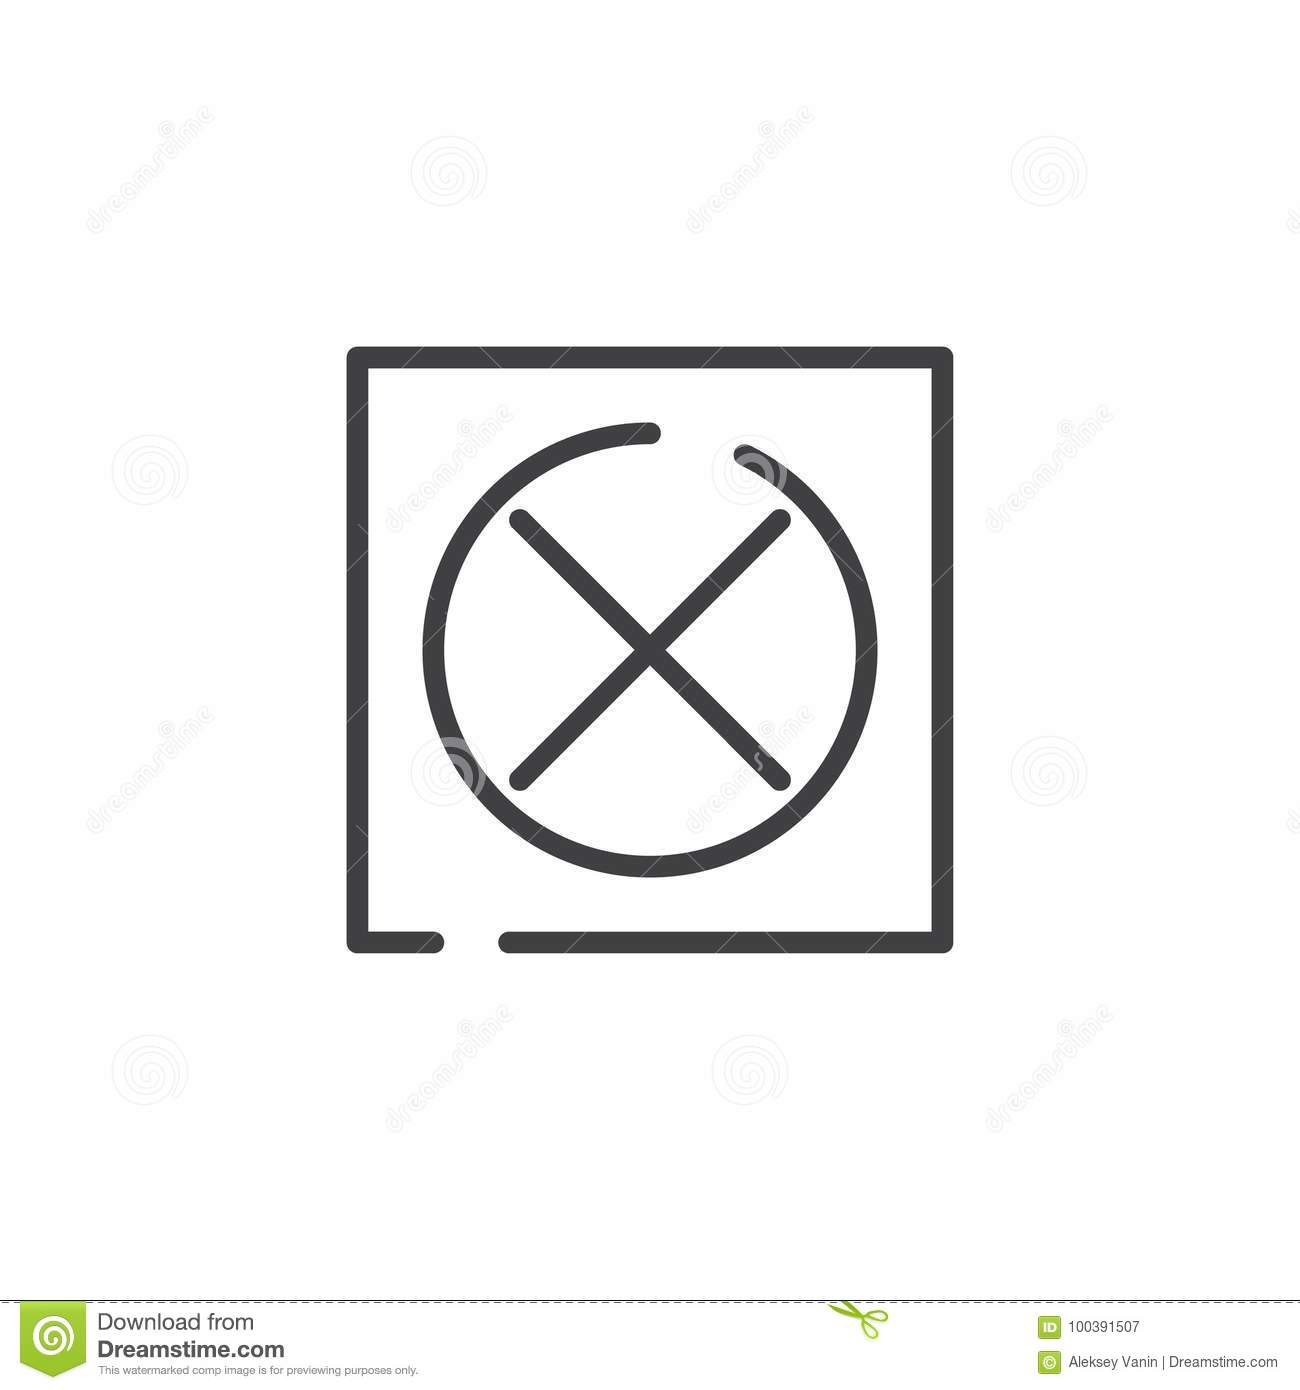 Do Not Tumble Dry Line Icon Stock Vector Illustration Of Simple